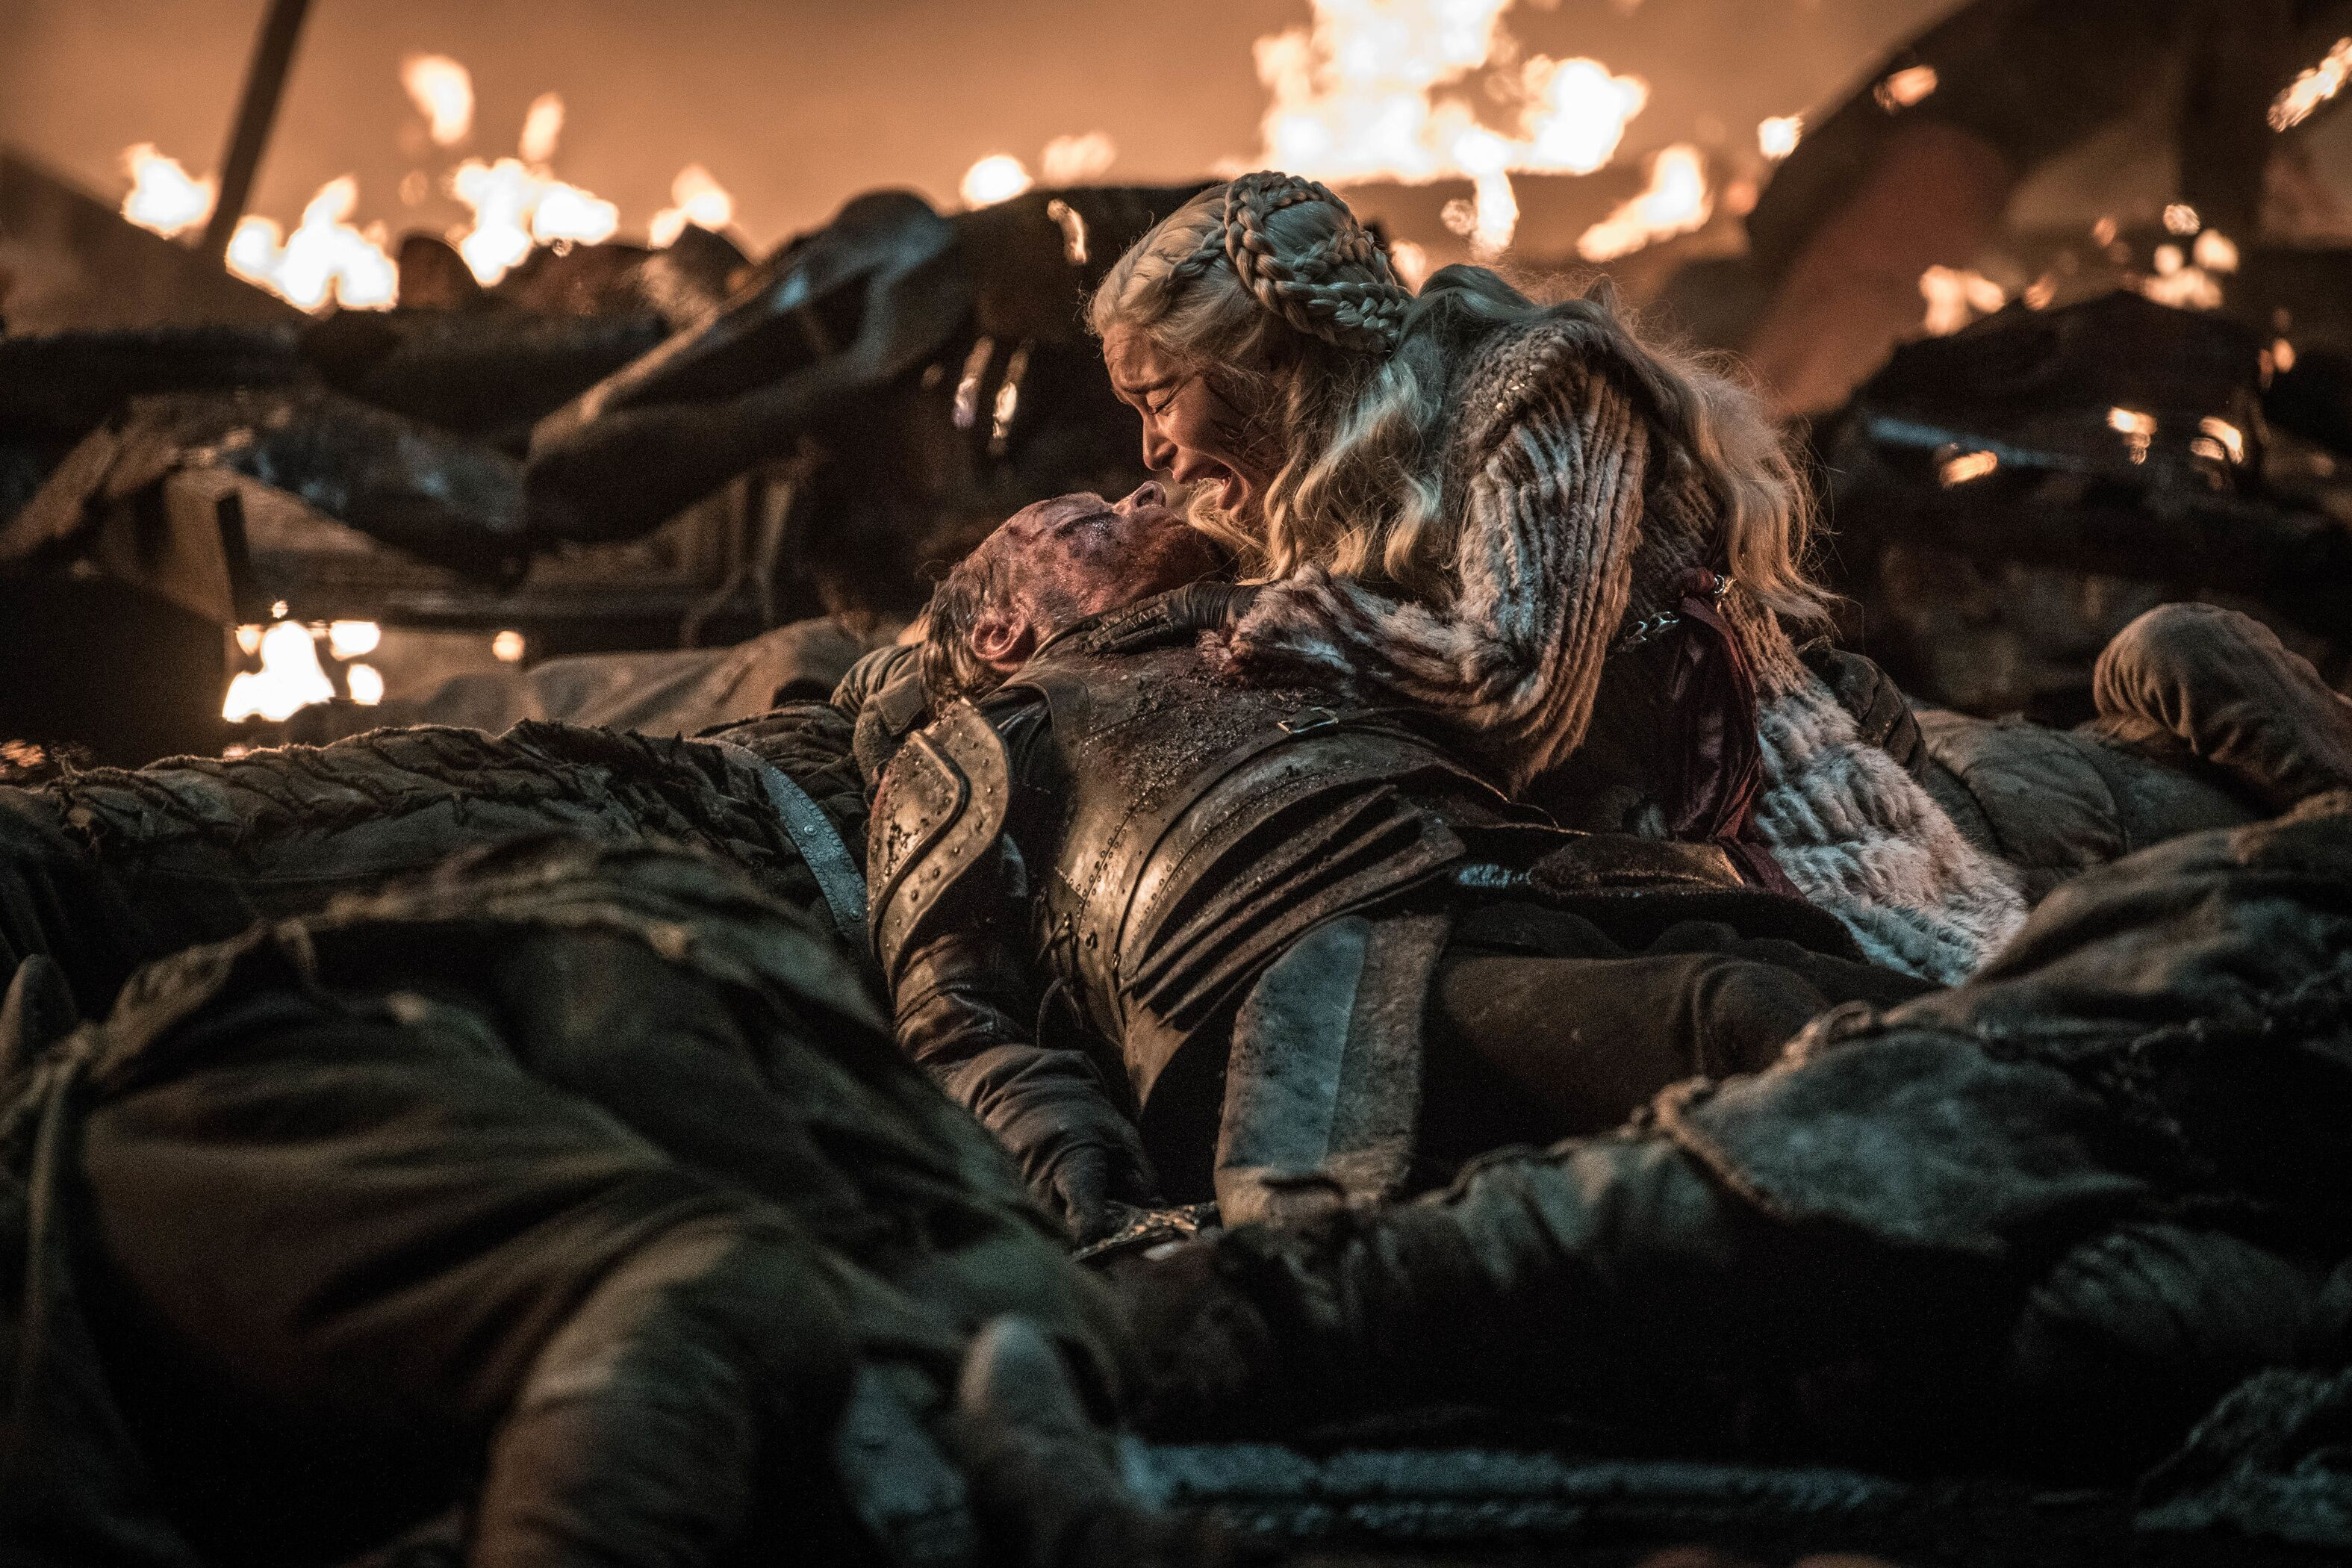 Iain Glen as Jorah Mormont and Emilia Clarke as Daenerys Targaryen